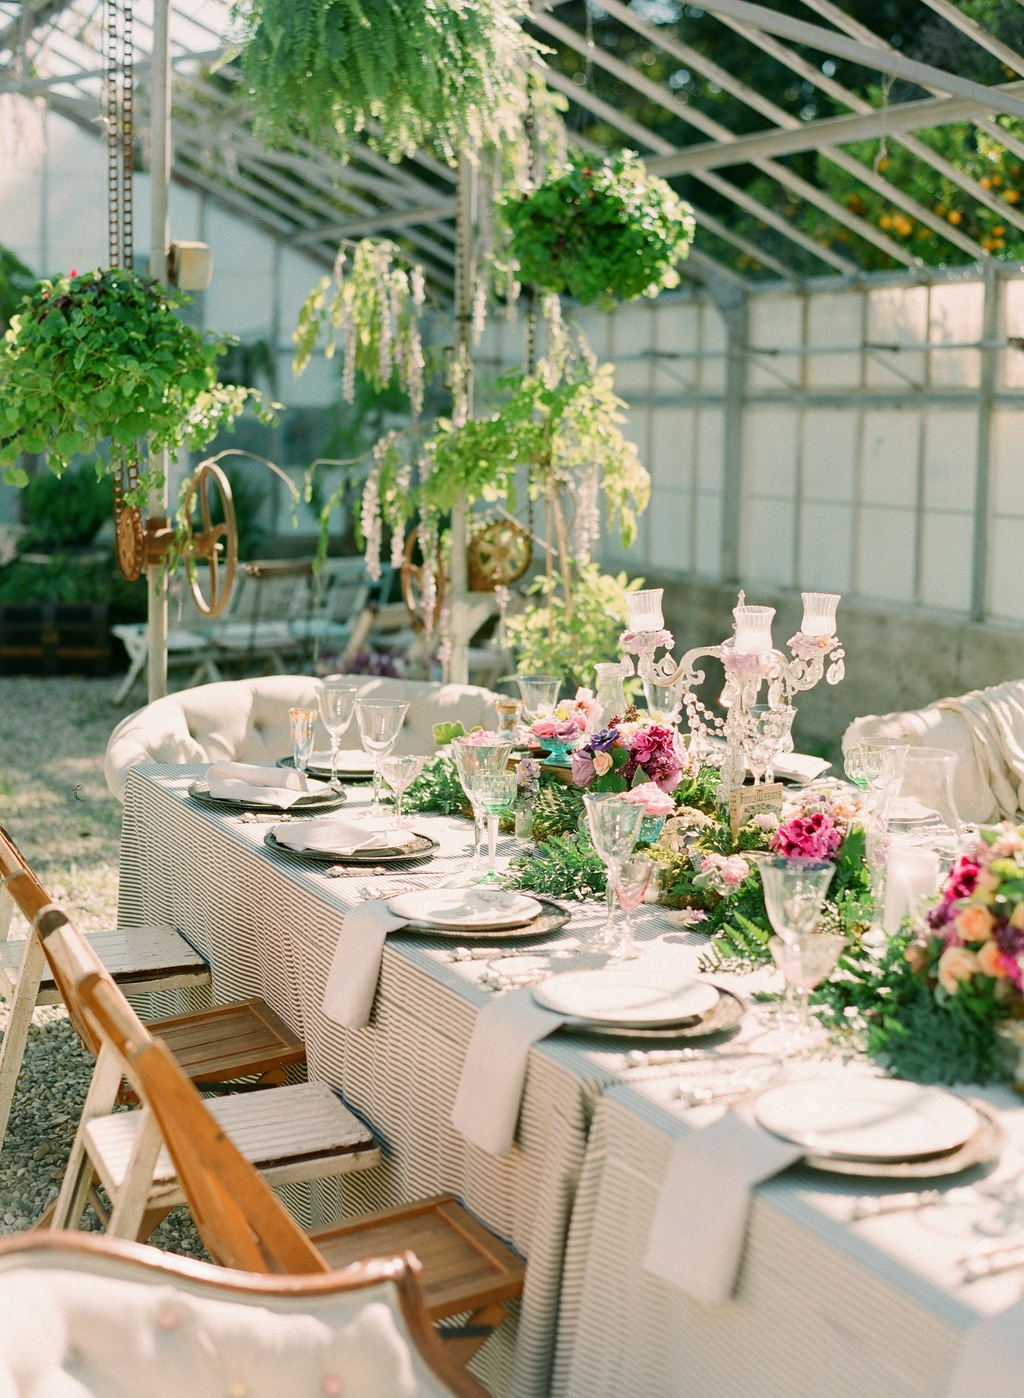 Styled-wedding-beaux-arts-tea-time-monique-lhuillier-santa-barbara-chic-table-setting-flowers-pink-purple-moss-160.full